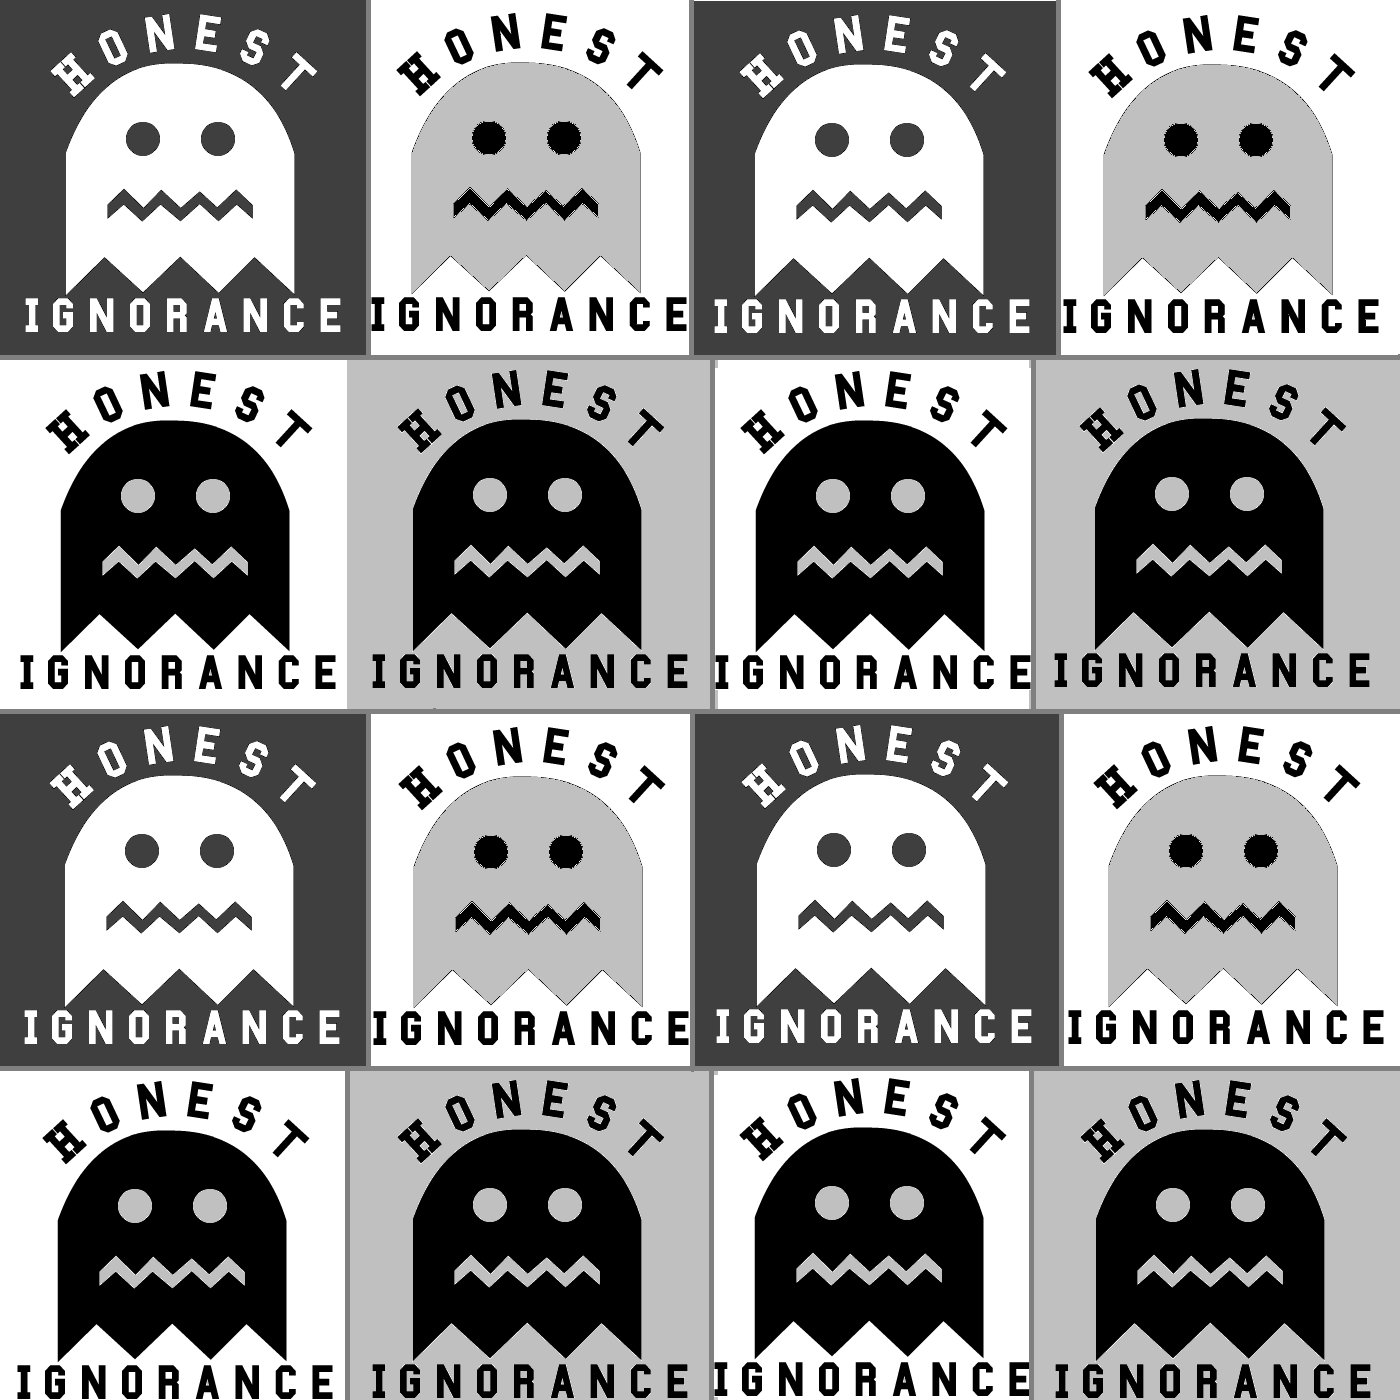 Honest Ignorance - Hosted by Matt Cole